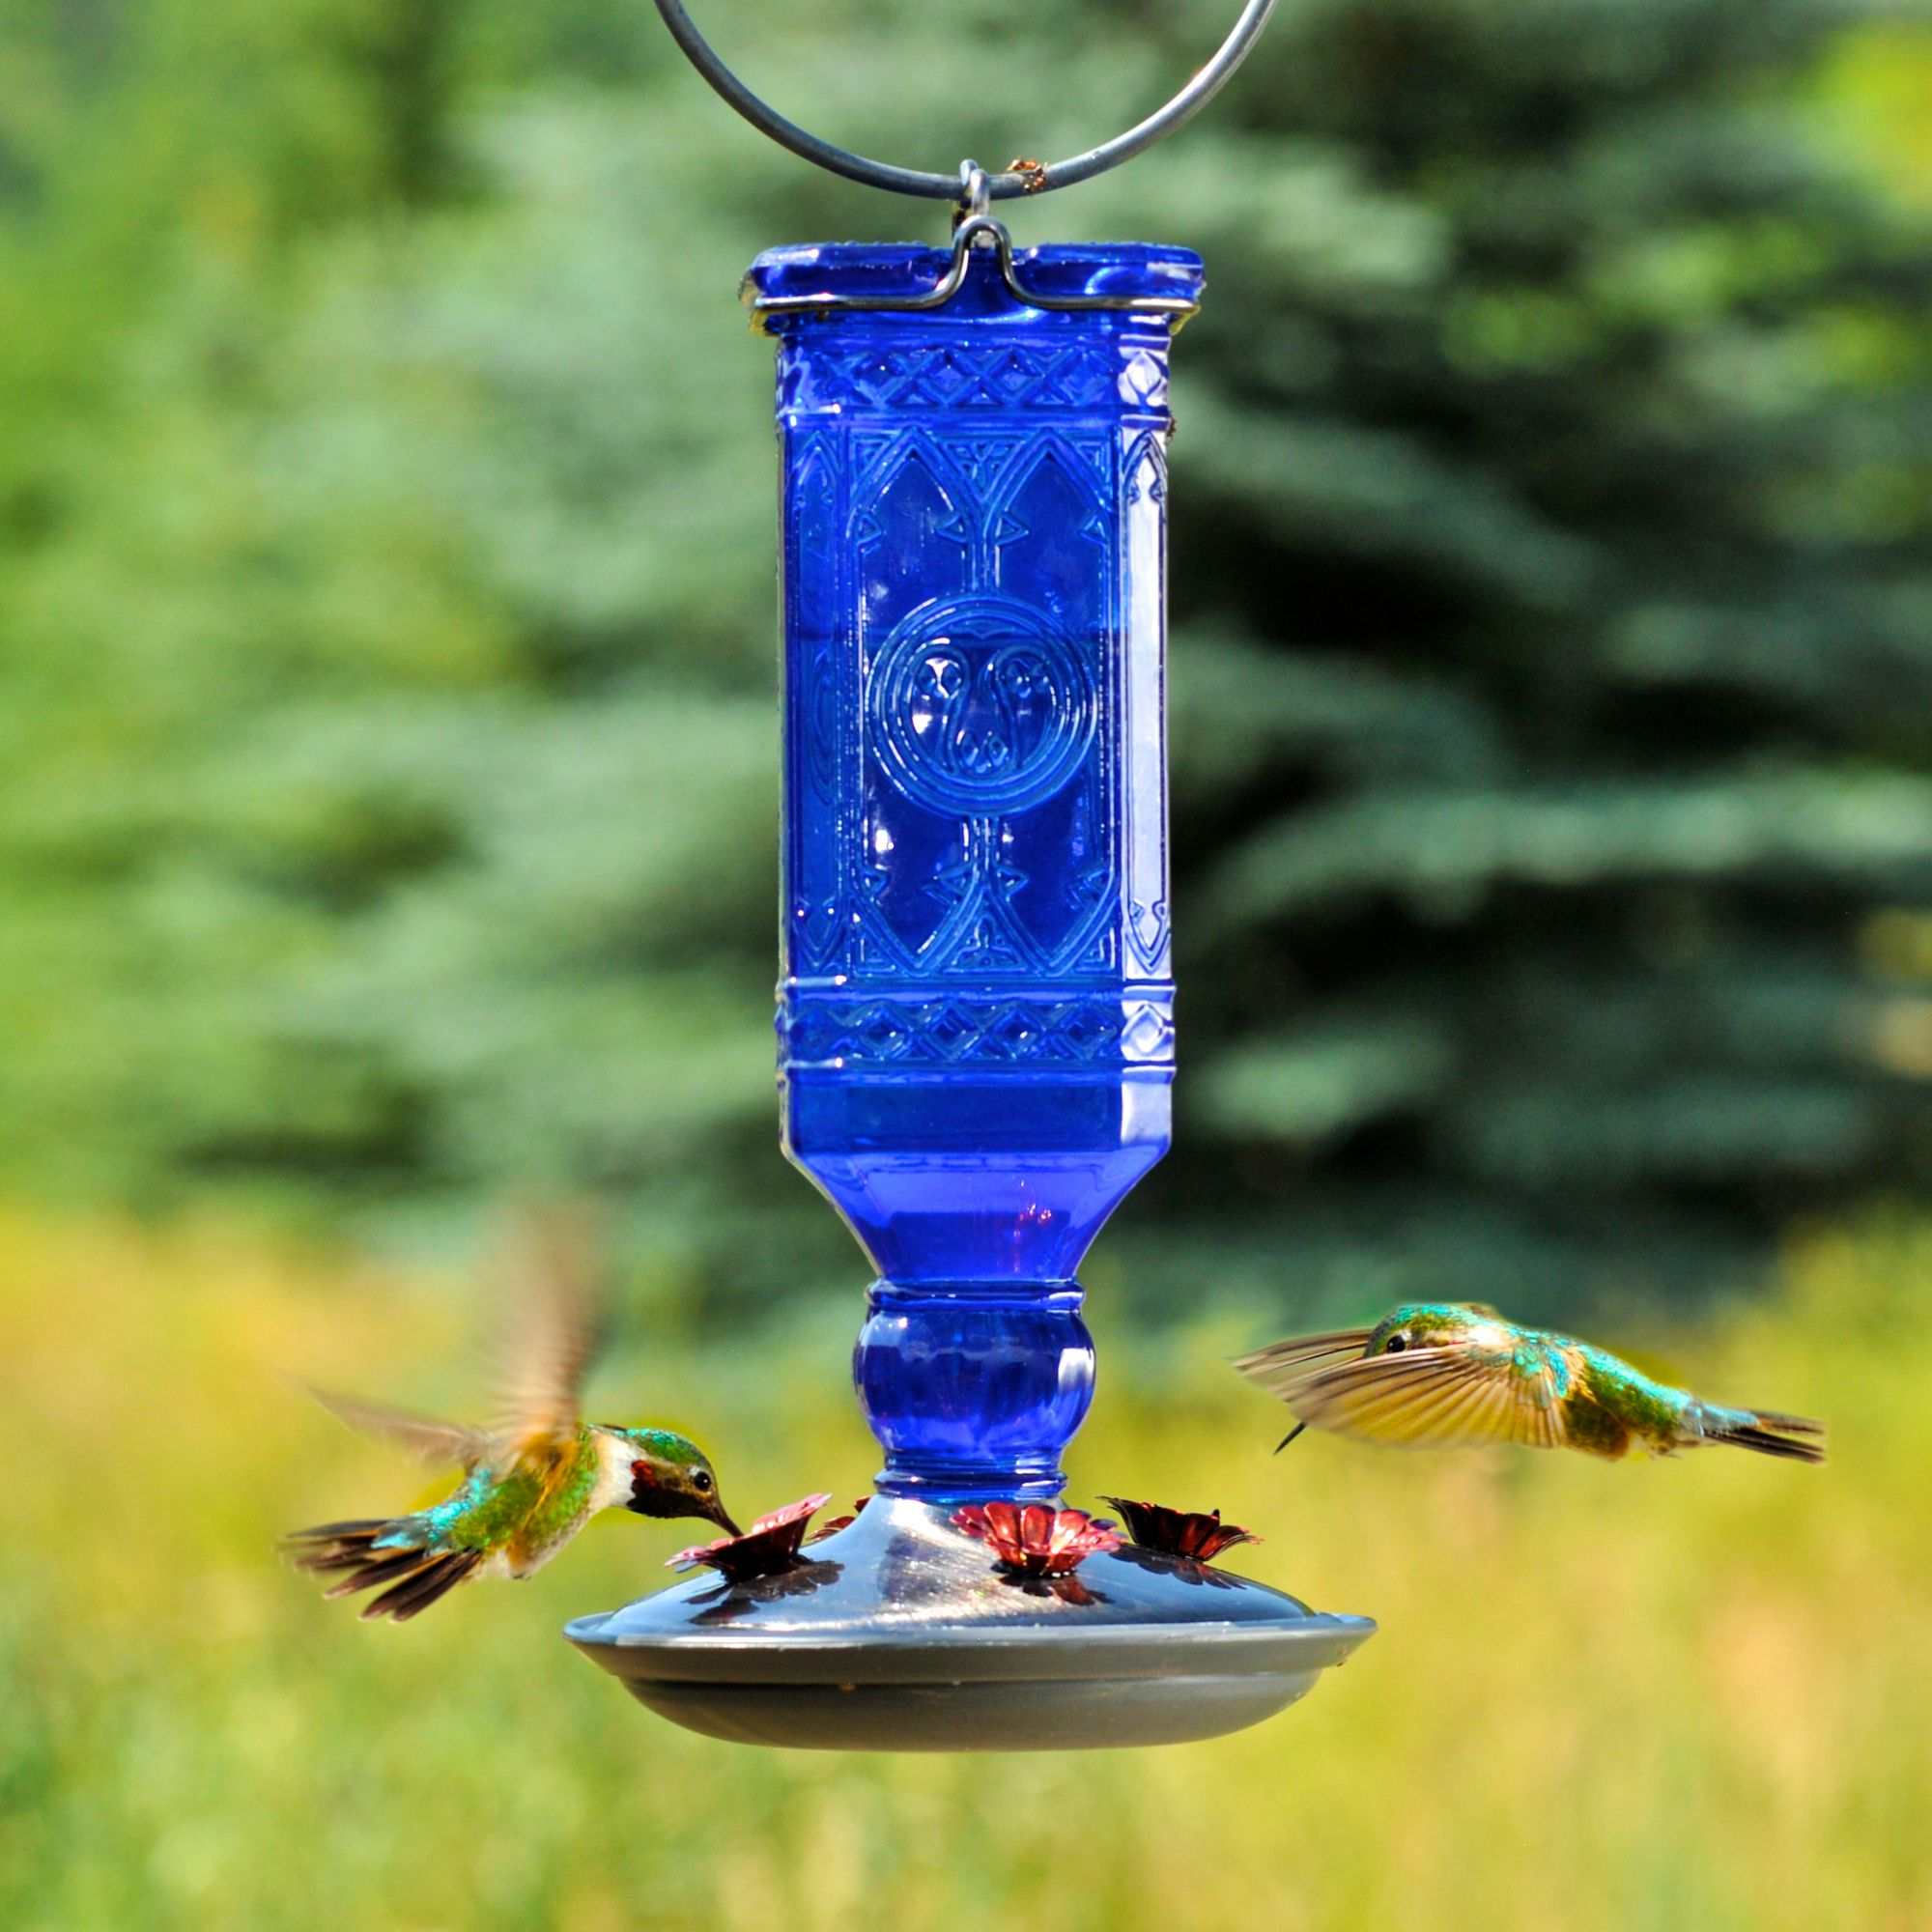 us perky feeders perkypet model hummingbird pet bf antique glass decorative square bottle feeder red com